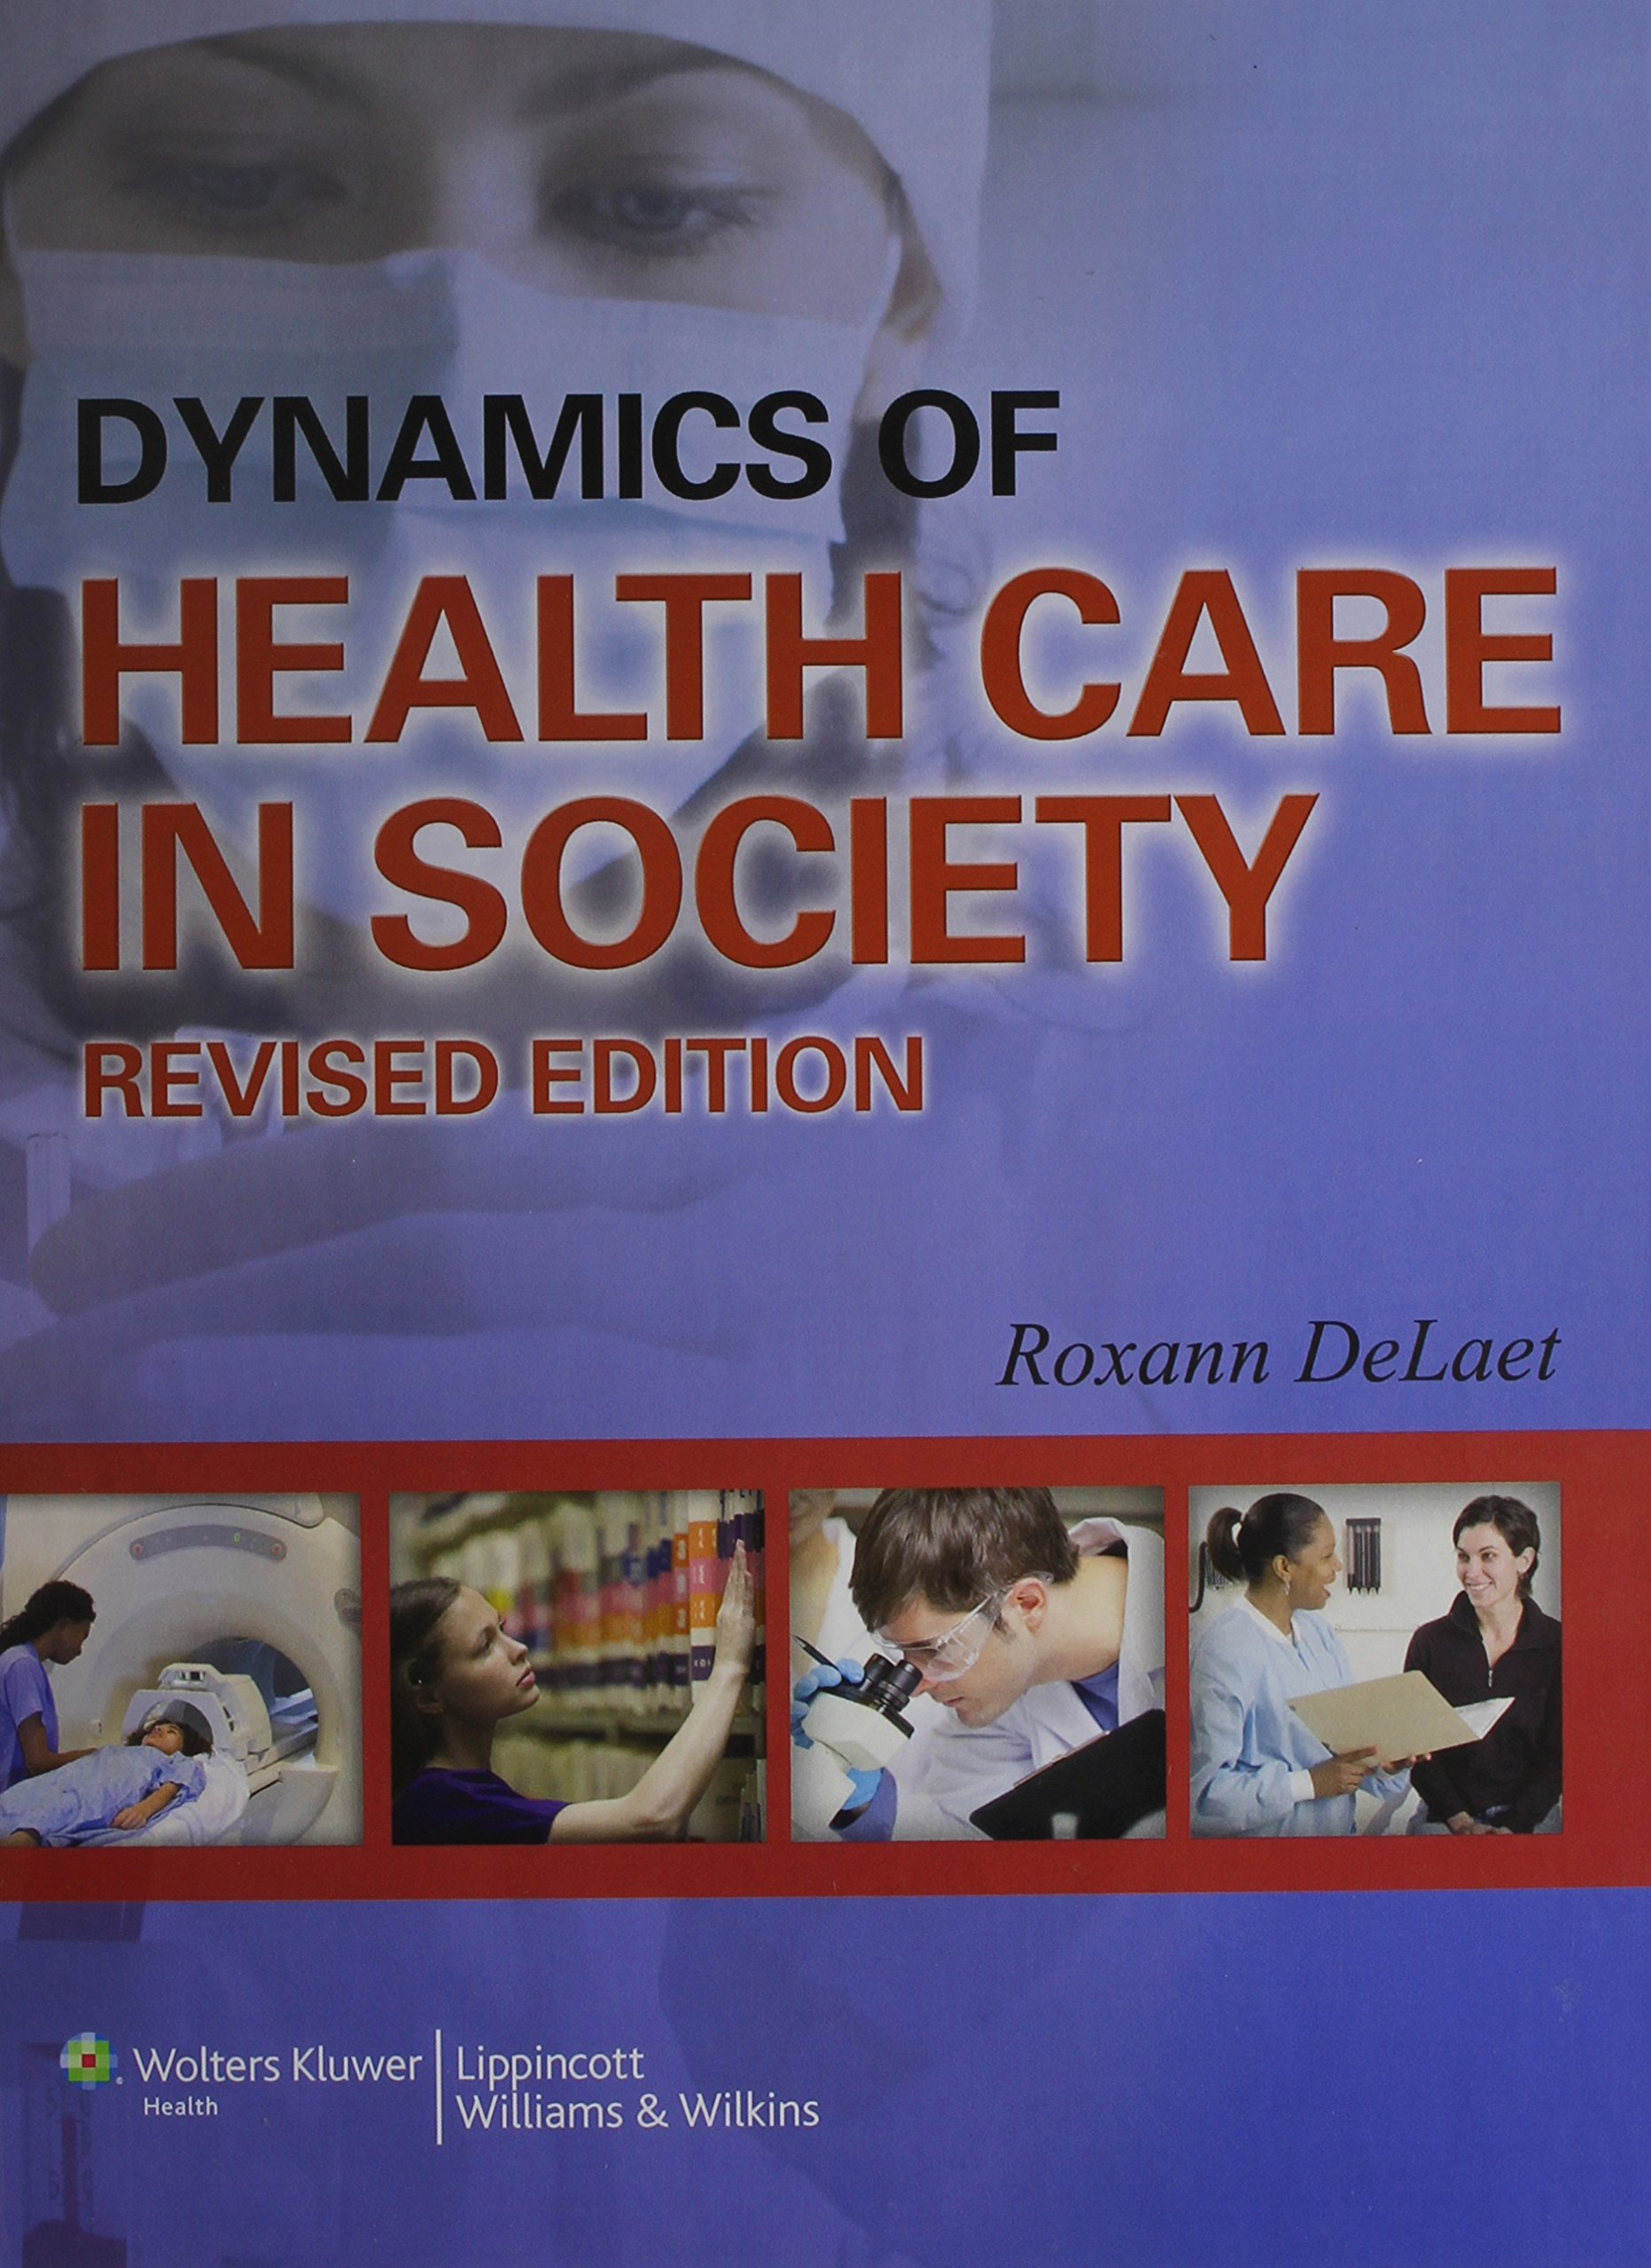 Dynamics of Health Care in Society, Revised Edition: Roxann Delaet